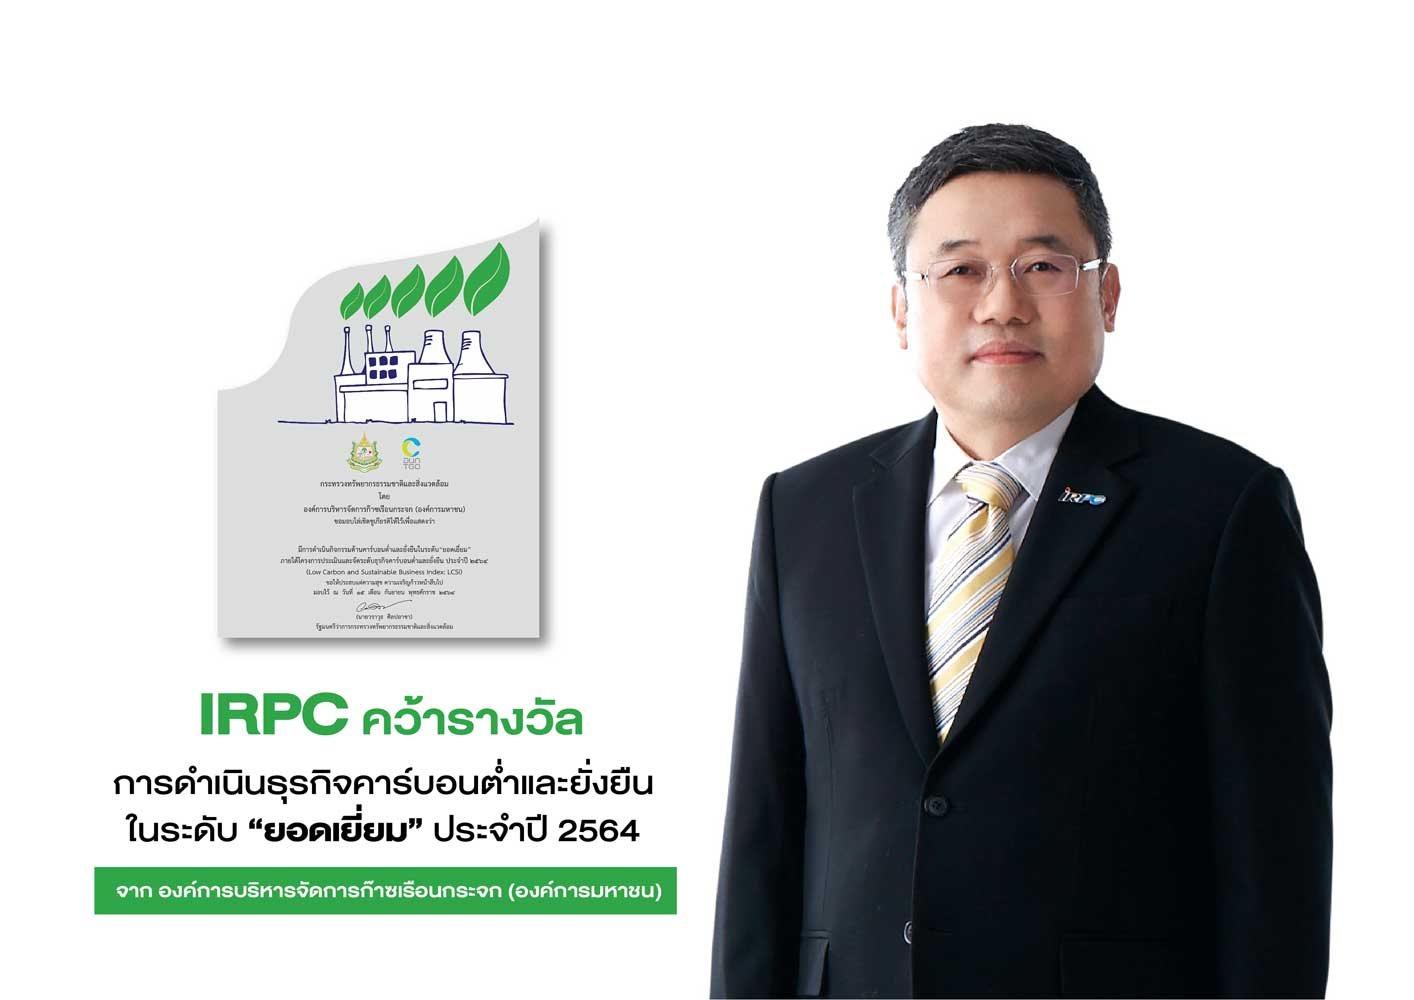 IRPC takes us closer to a low-carbon society with new strategy of care